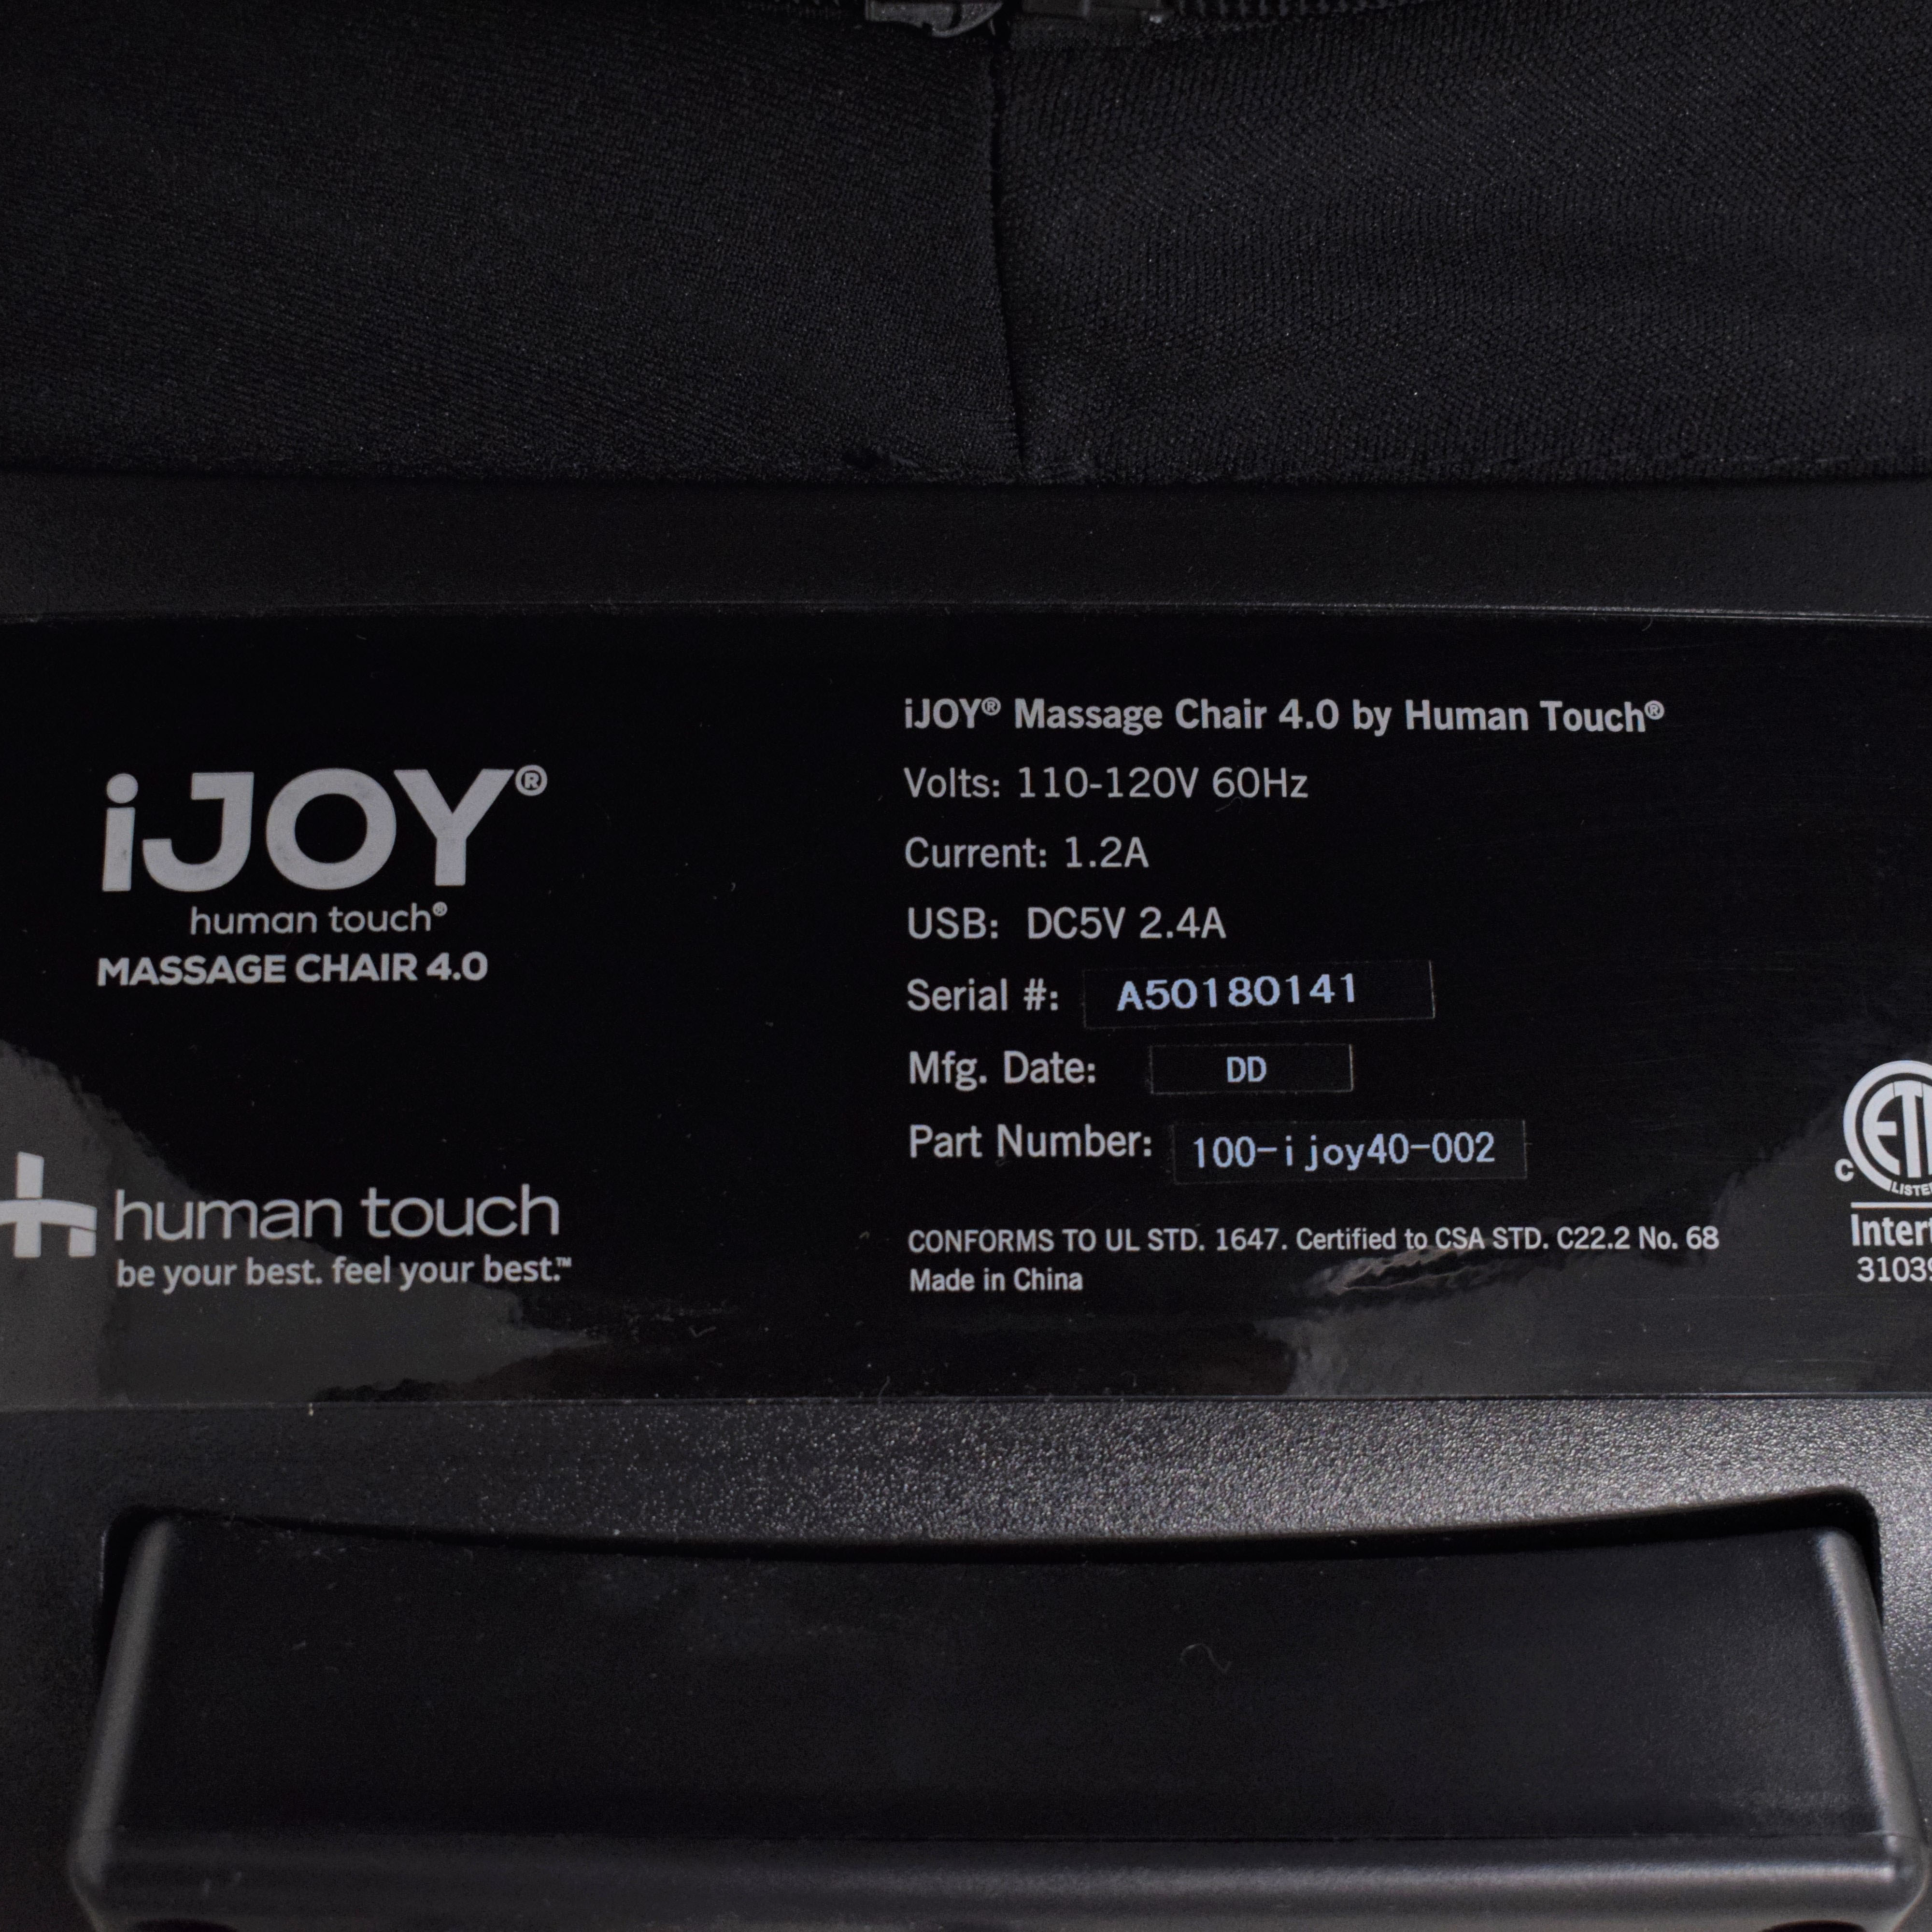 Human Touch Human Touch iJOY Massage Chair 4.0 Chairs